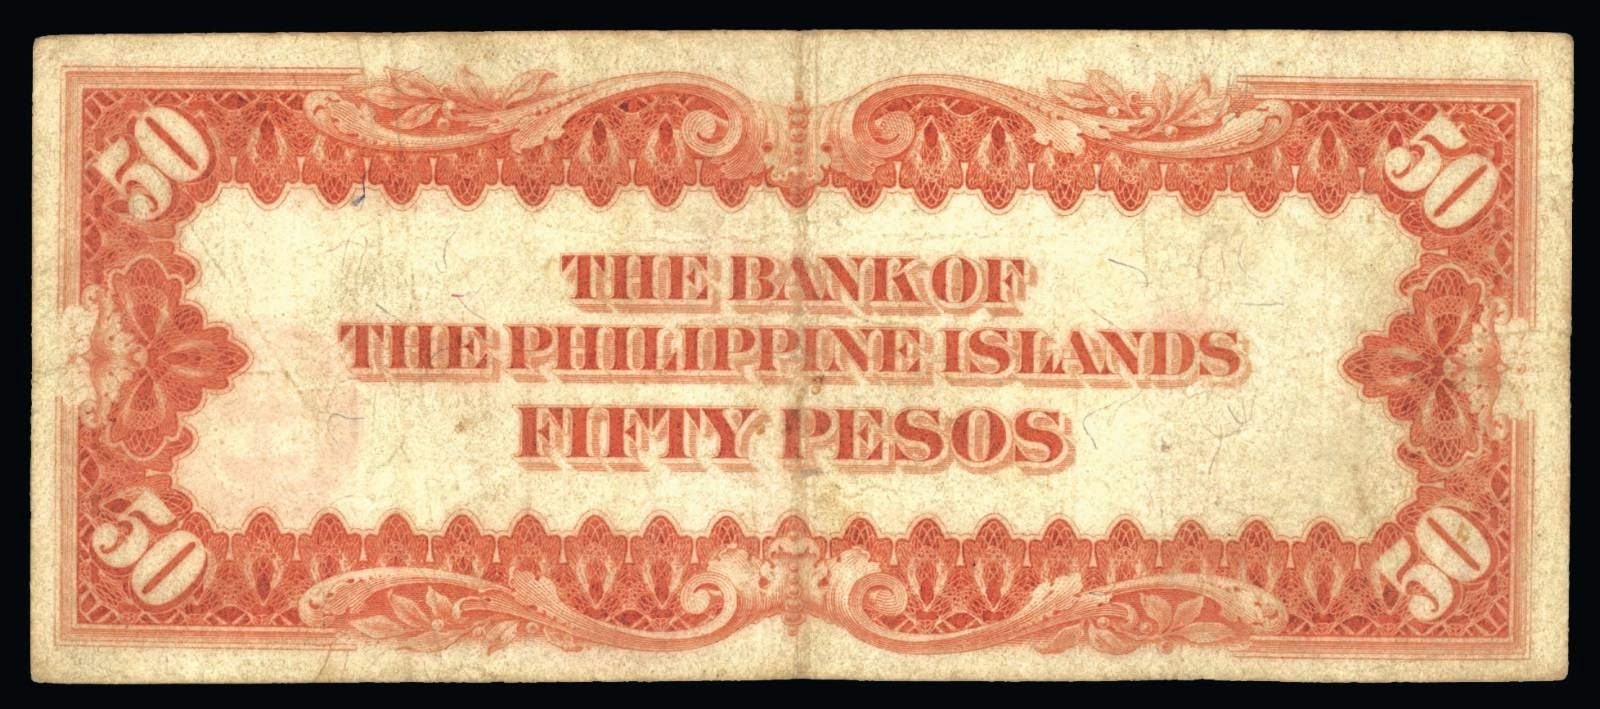 THE BANK OF THE PHILIPPINE ISLANDS - FIFTY PESOS